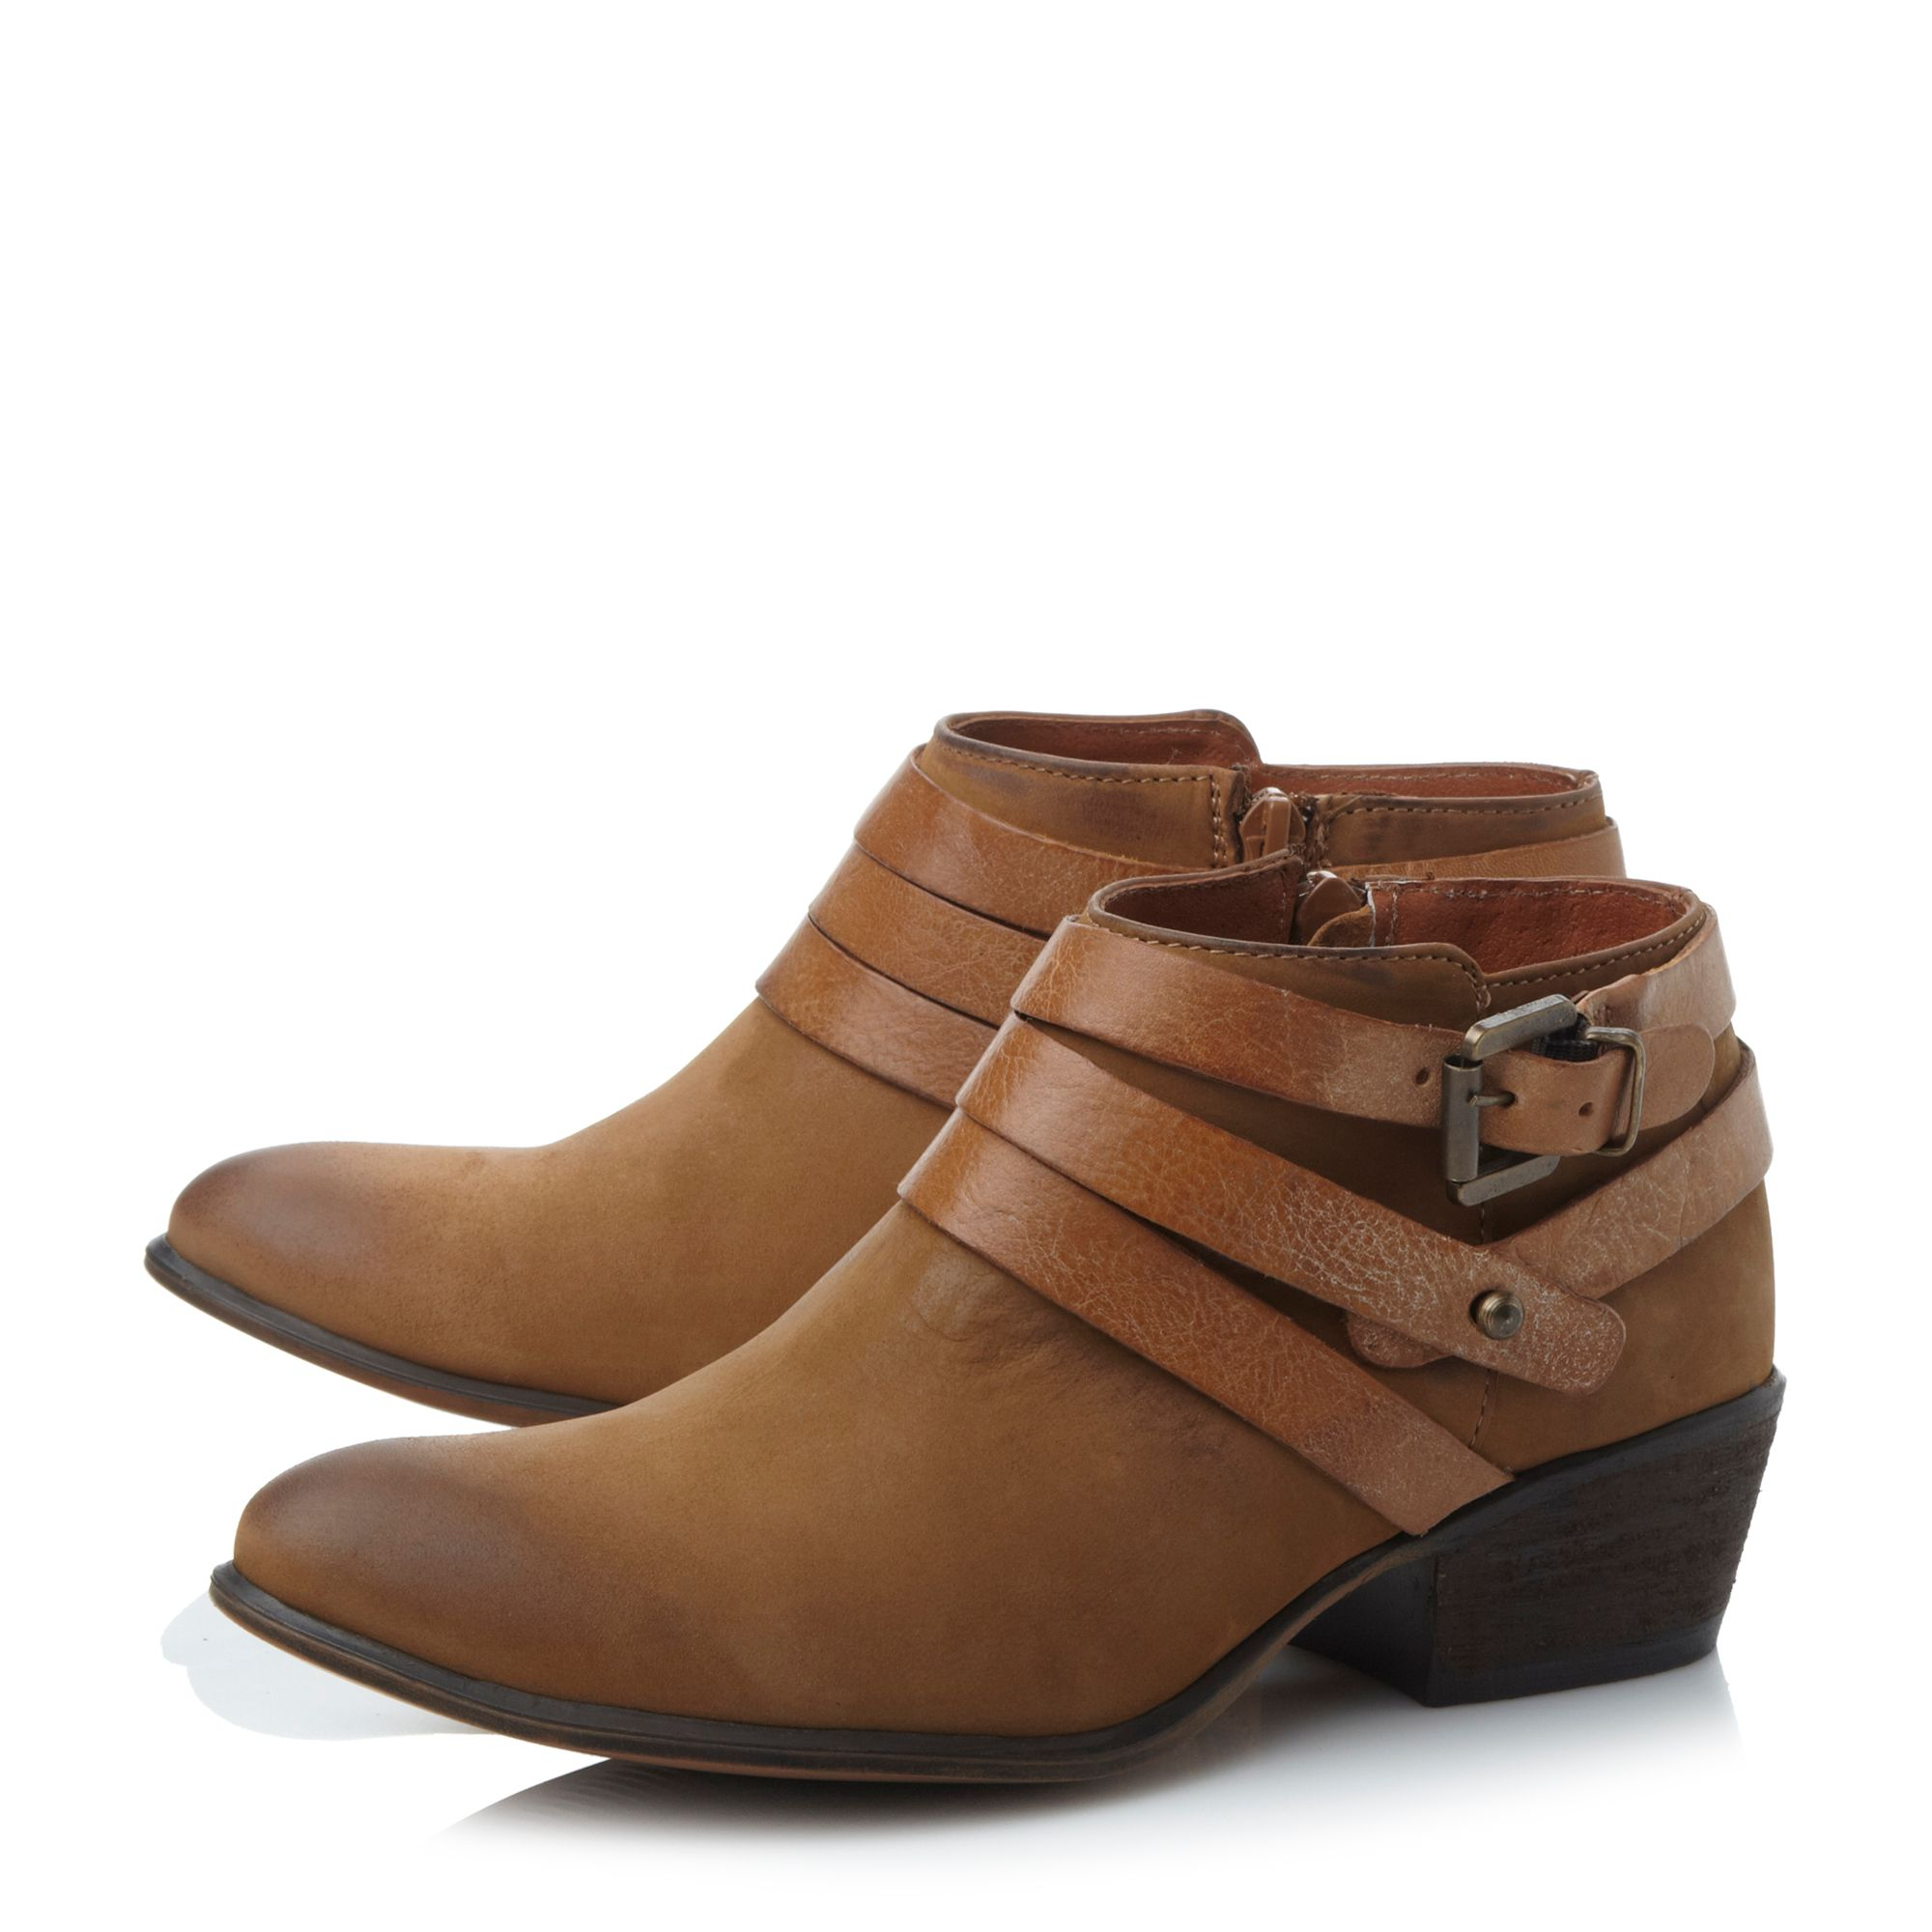 steve madden regennt cuban heel boot in brown lyst